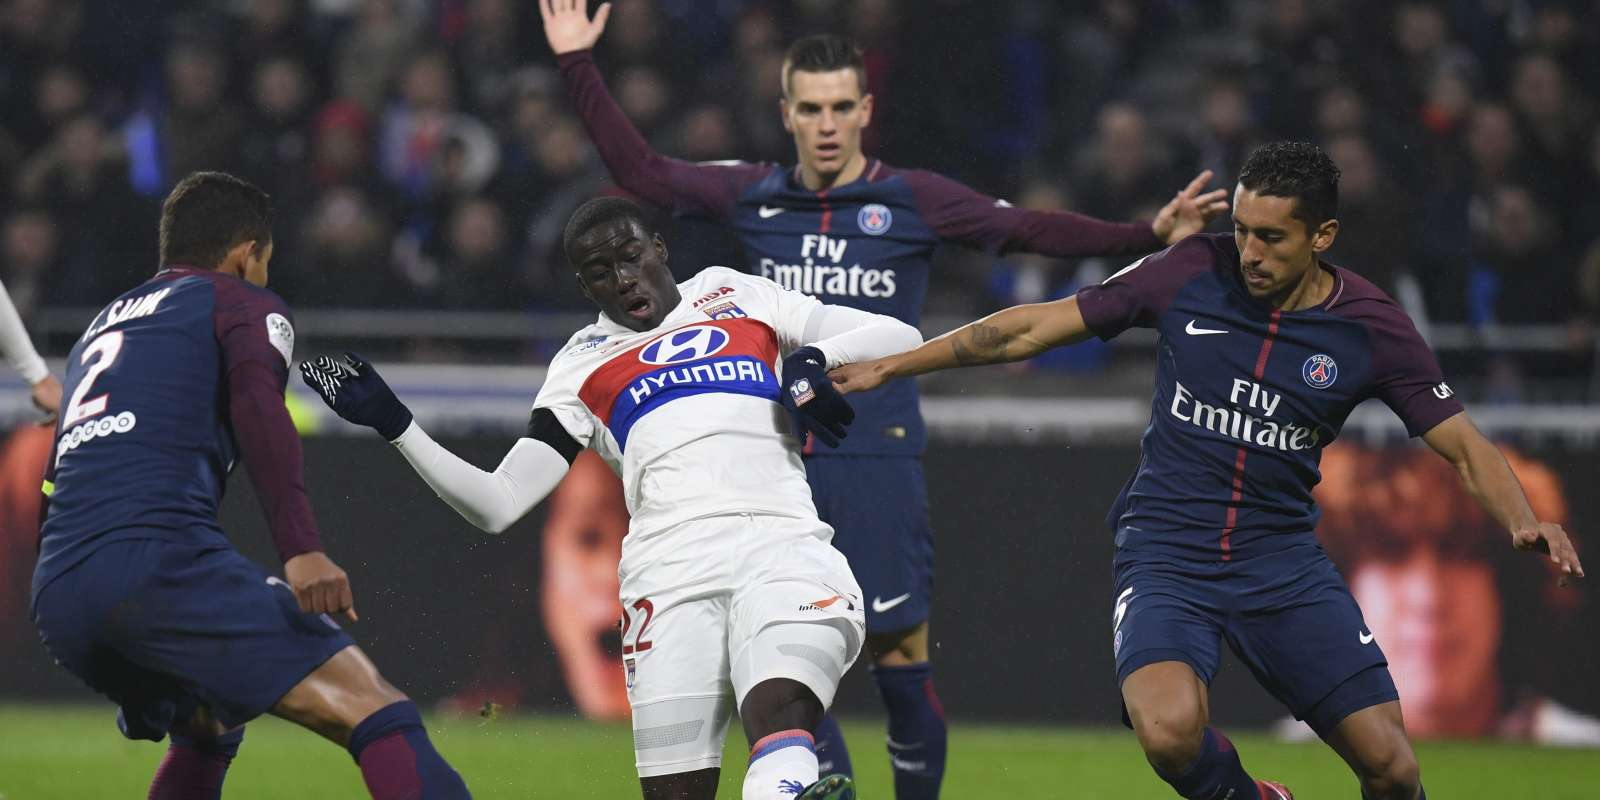 Lyon's French defender Ferland Mendy (C) vies with Paris Saint-Germain's Brazilian defender Thiago Silva (L), Paris Saint-Germain's Brazilian defender Marquinhos (R) and Paris Saint-Germain's Argentinian midfielder Giovanni Lo Celso during the French L1 football match between Olympique Lyonnais and Paris-Saint Germain (PSG) at Groupama stadium in Decines-Charpieu on January 21, 2018. / AFP / PHILIPPE DESMAZES